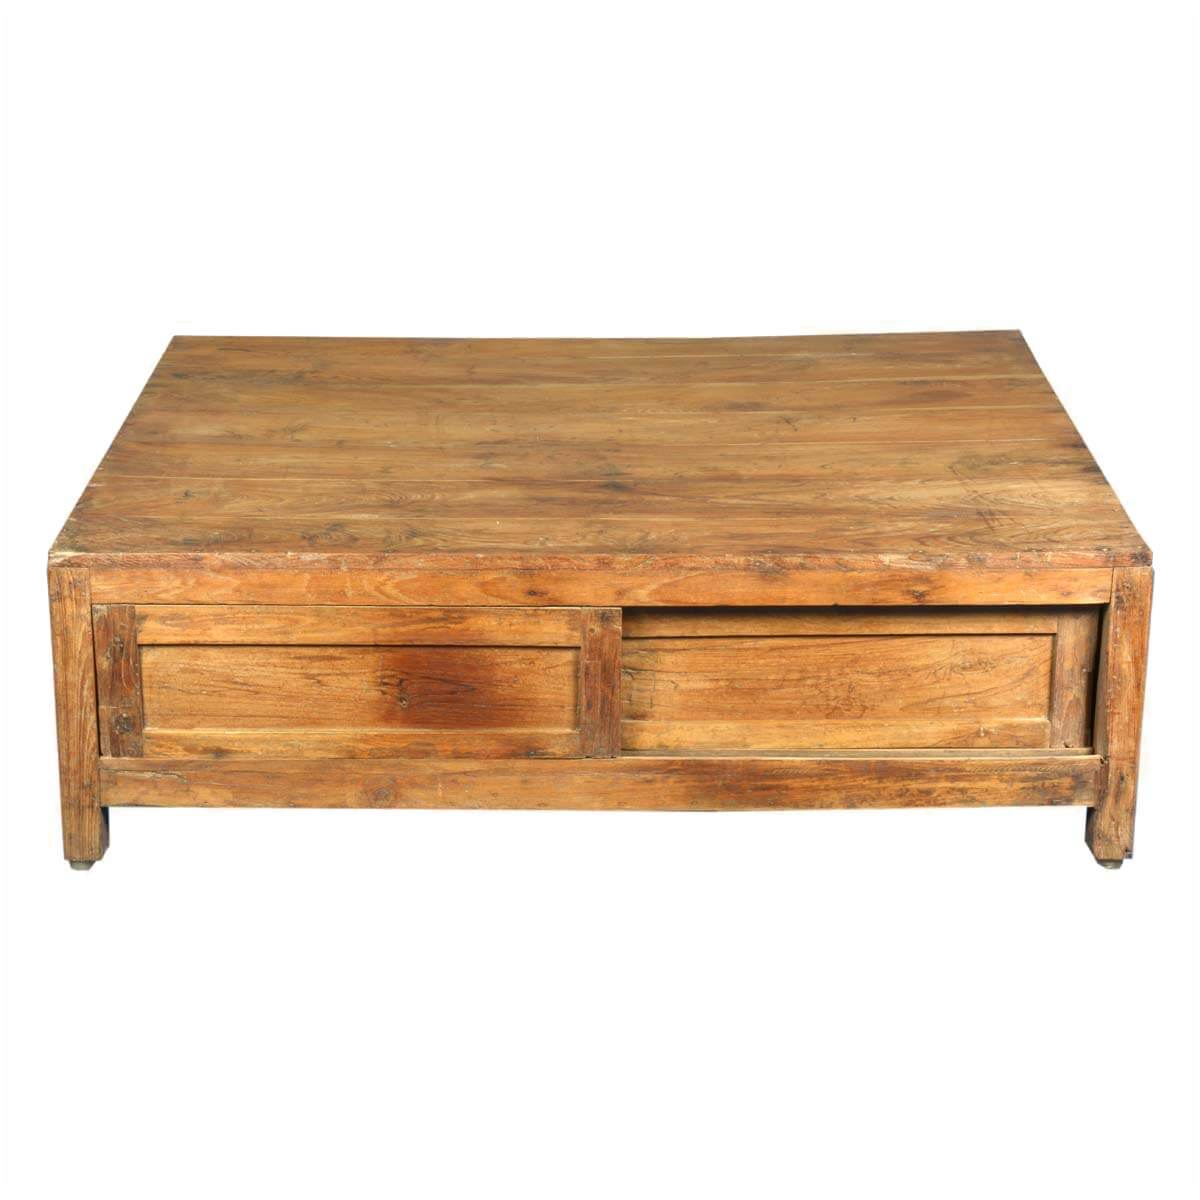 Handmade solid teak wood large coffee table with storage Solid teak coffee table